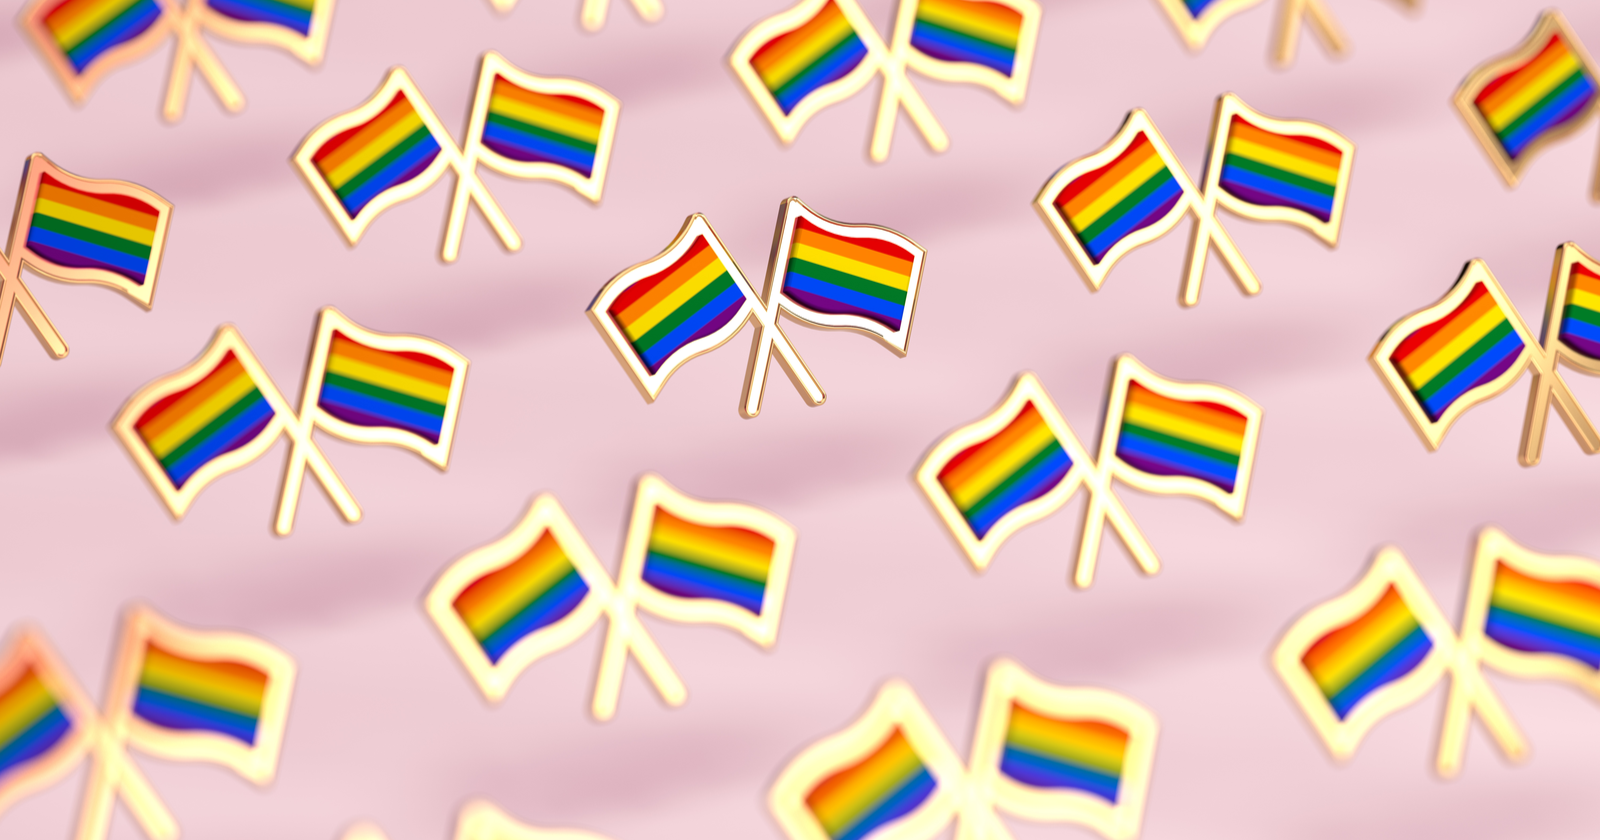 Instagram to Make Stories More Colorful for Pride Month in June